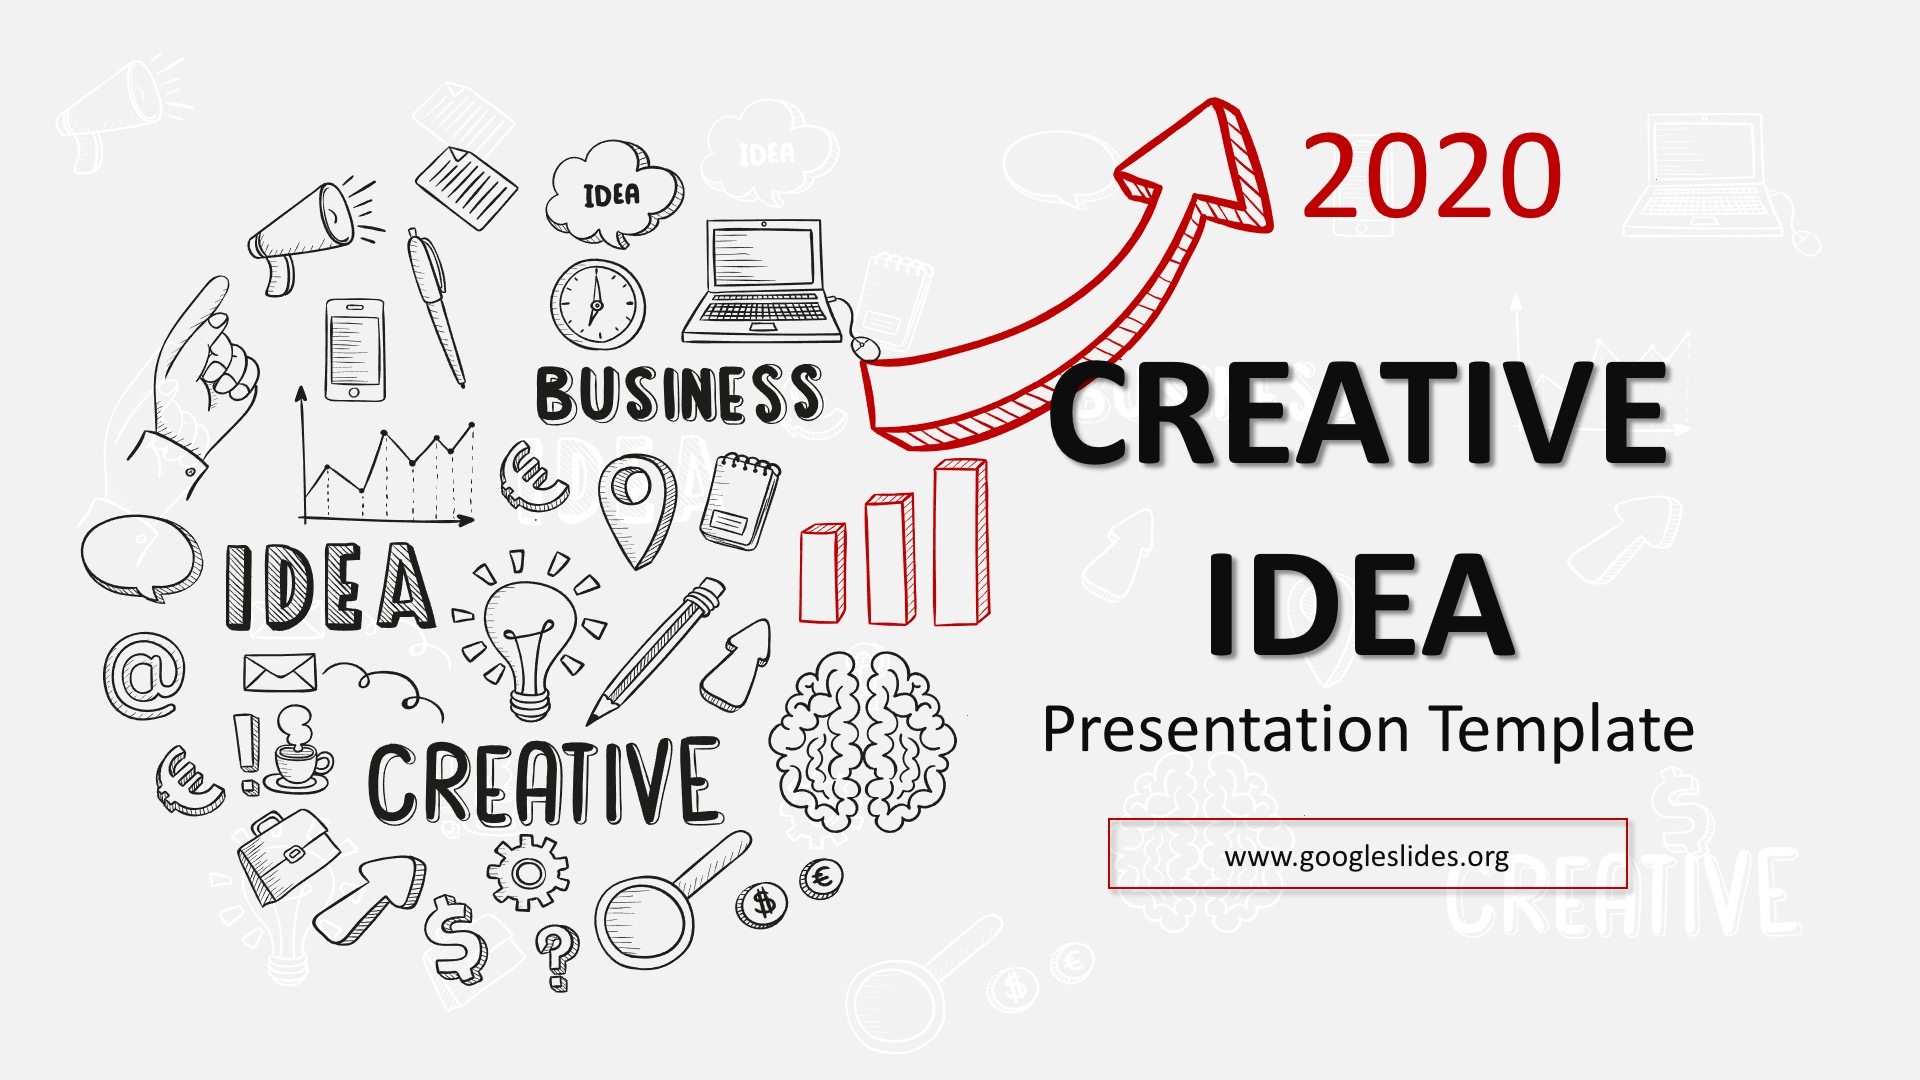 Creative Idea Presentation template